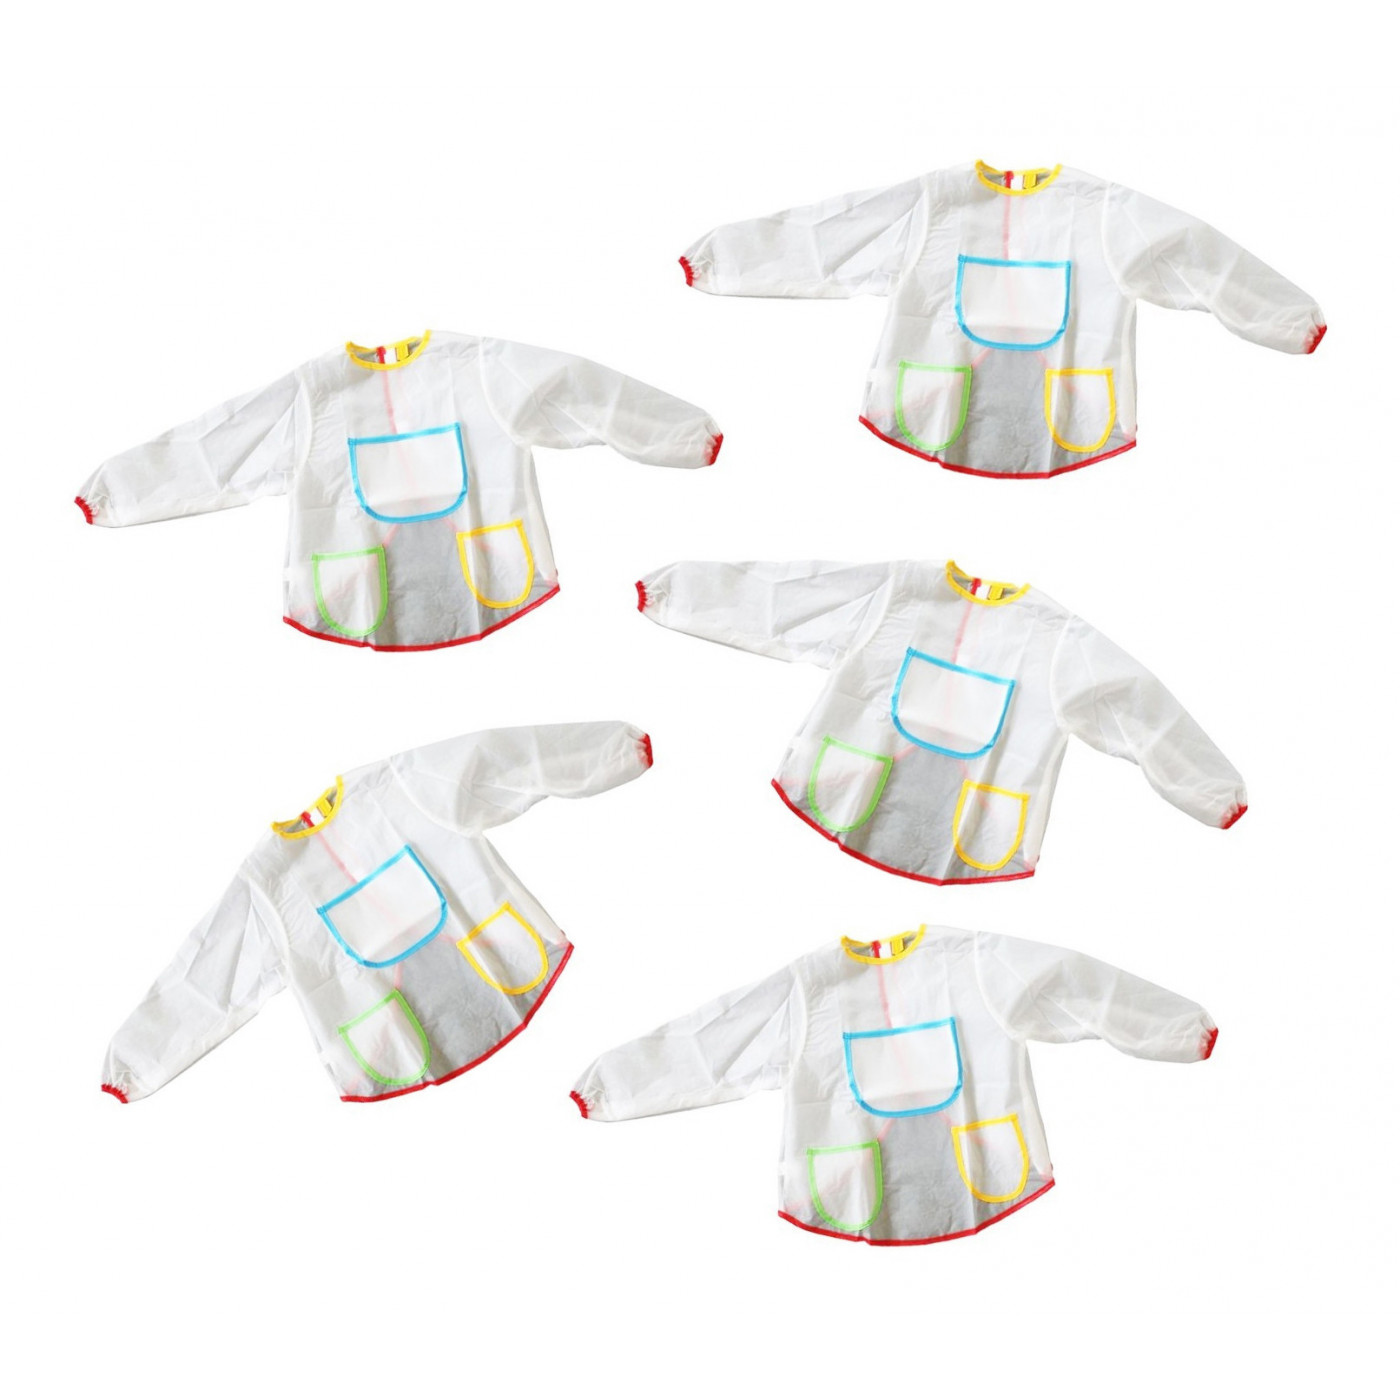 Set of 5 aprons for kids (suitable for ages 3-6 years)  - 1